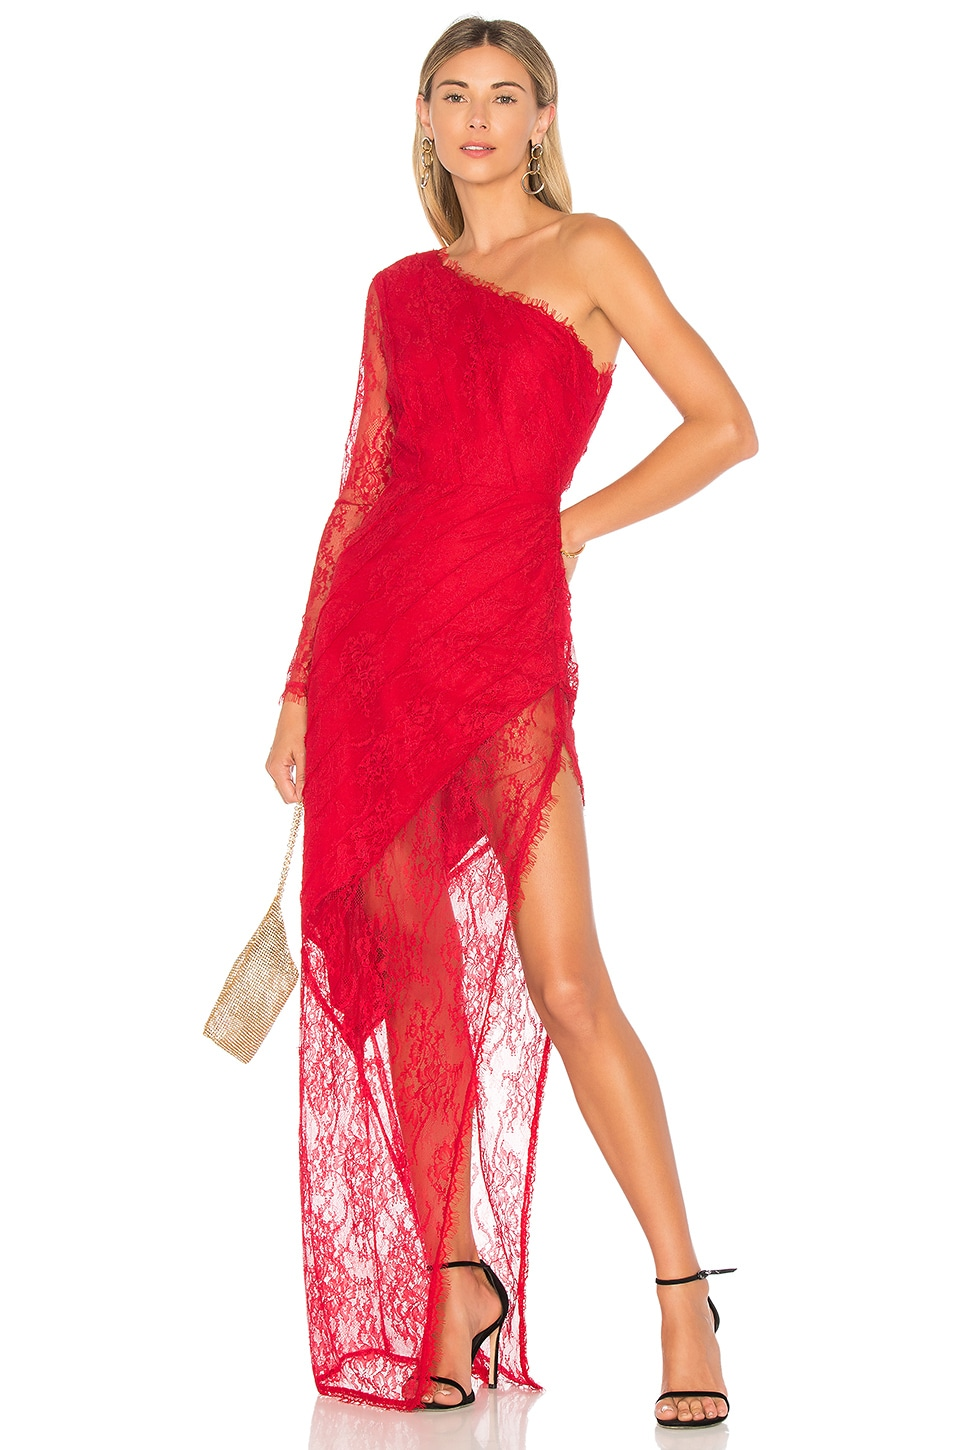 Lovers + Friends x REVOLVE Yara Gown in Red